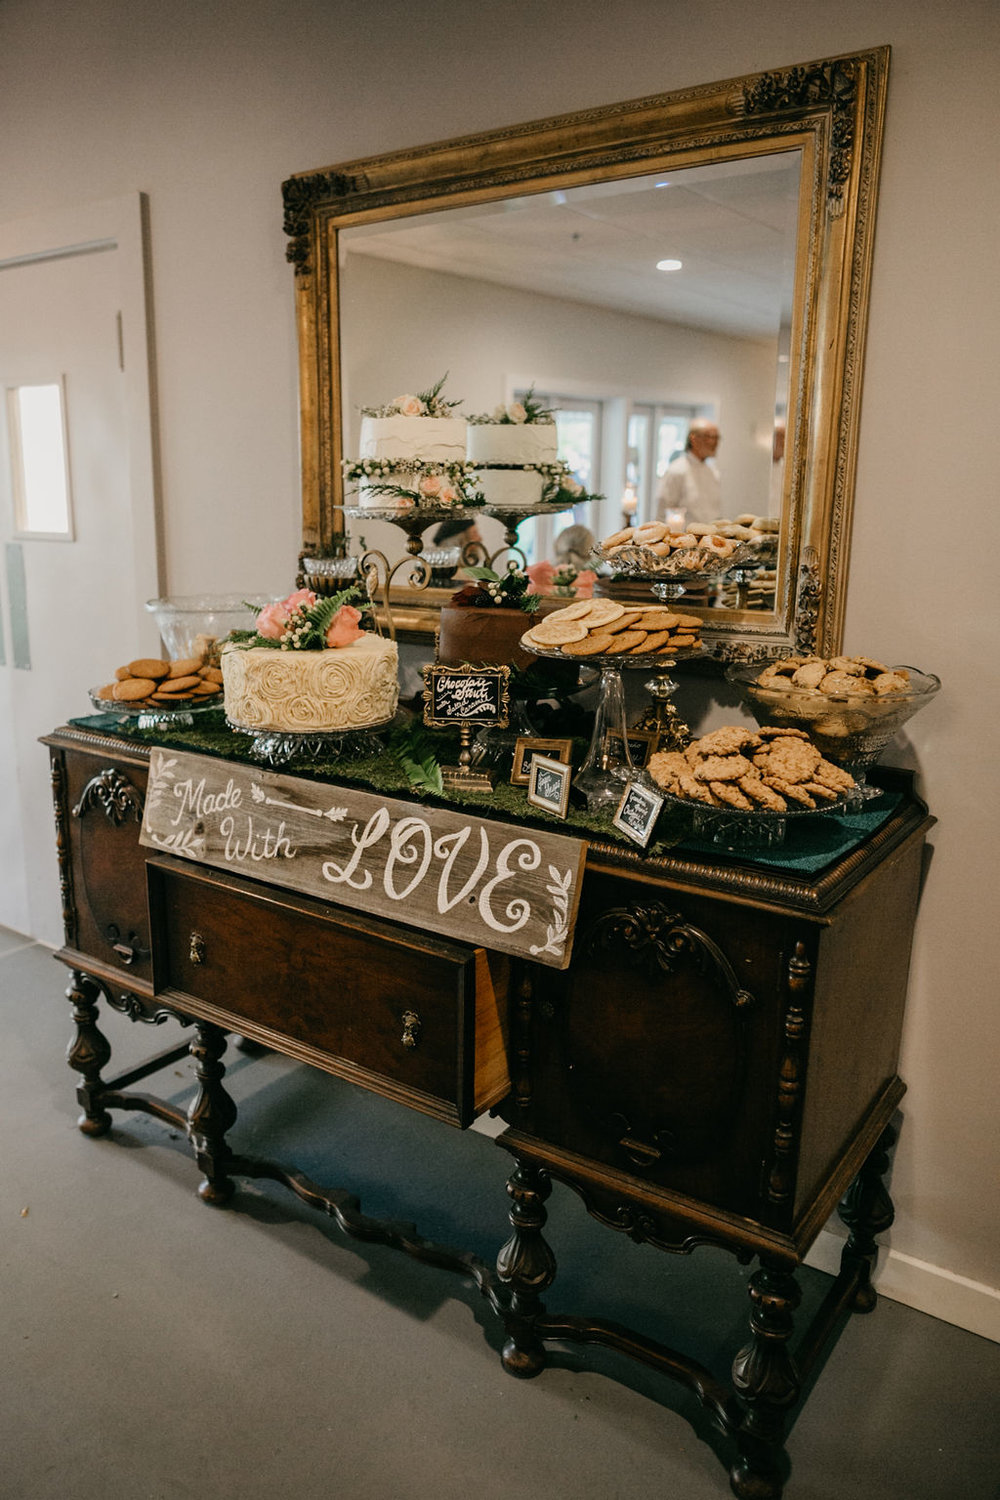 Vintage buffet, perfect for a dessert table or gifts!